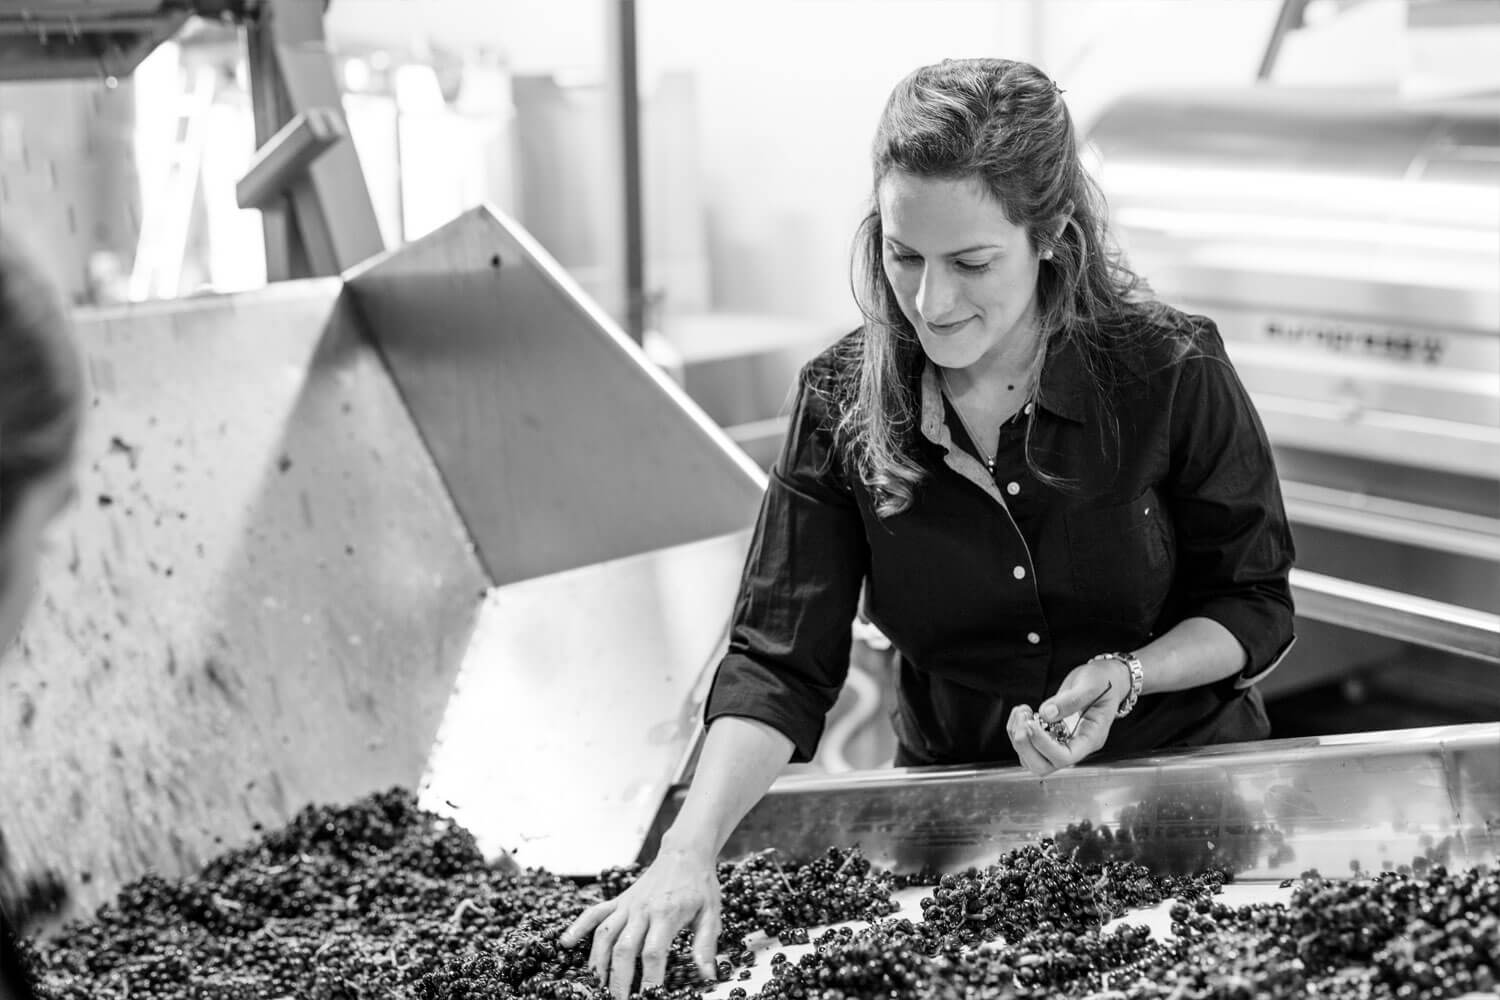 Bibiana Working with Grapes in the Winery